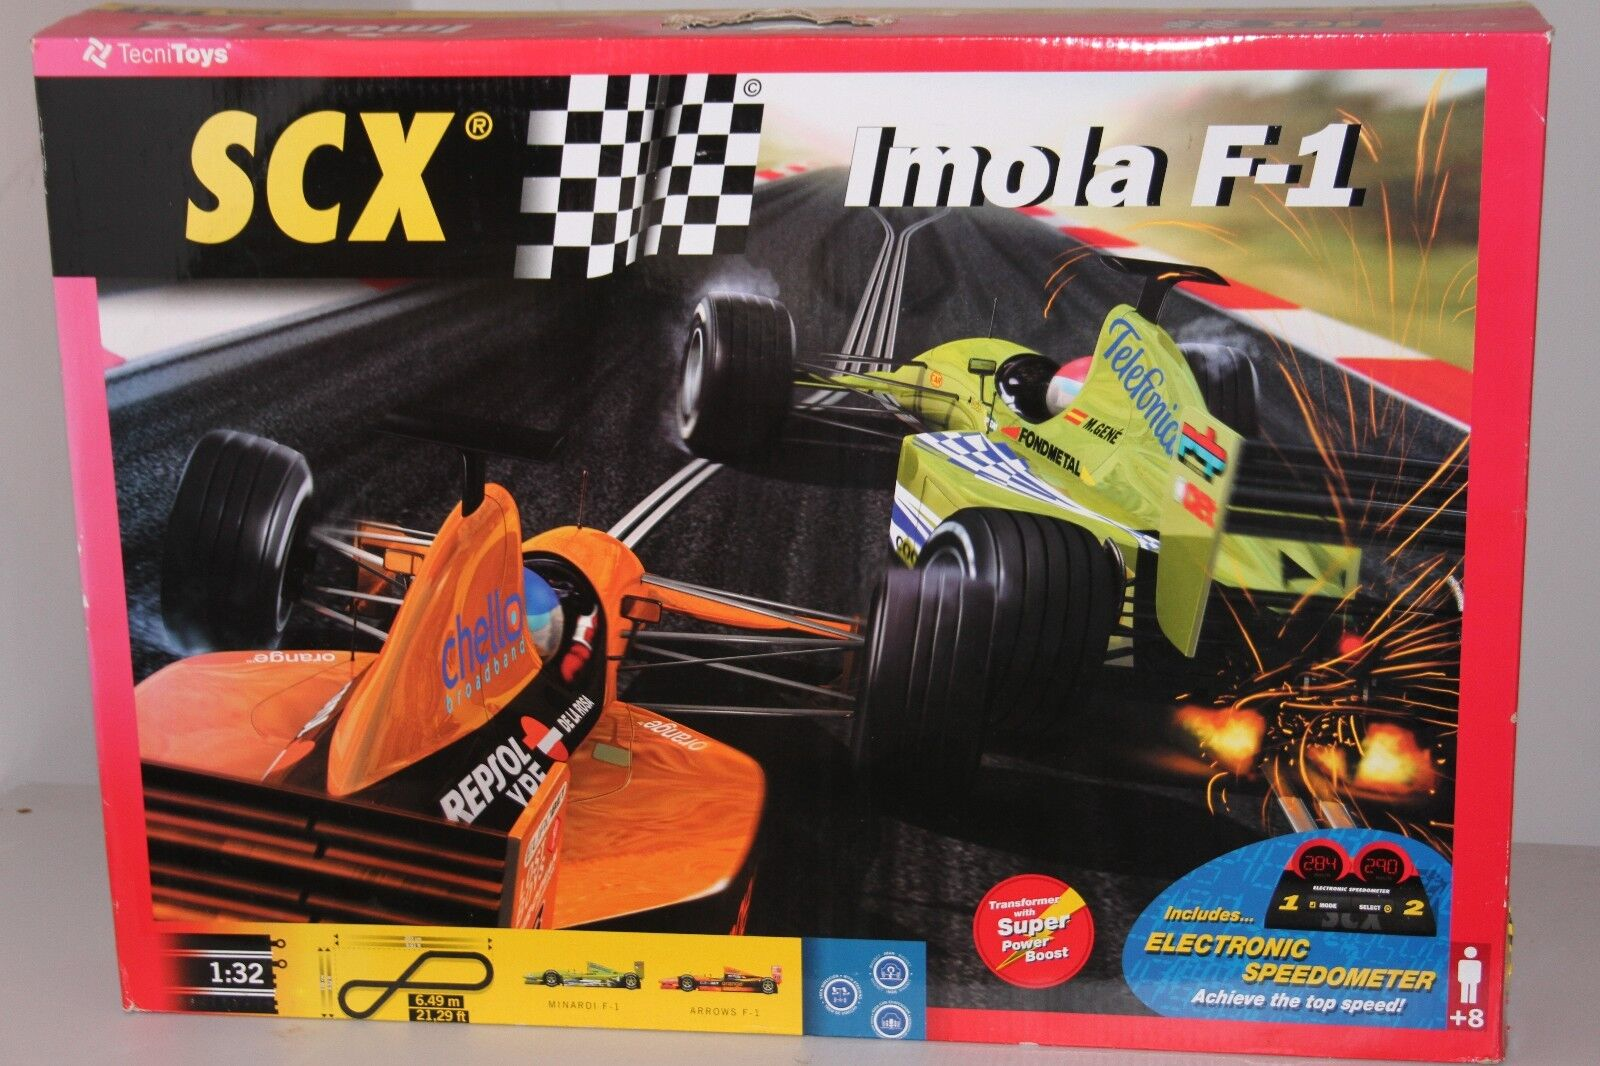 Scx 80460 Imola F-1 Slot Car Set